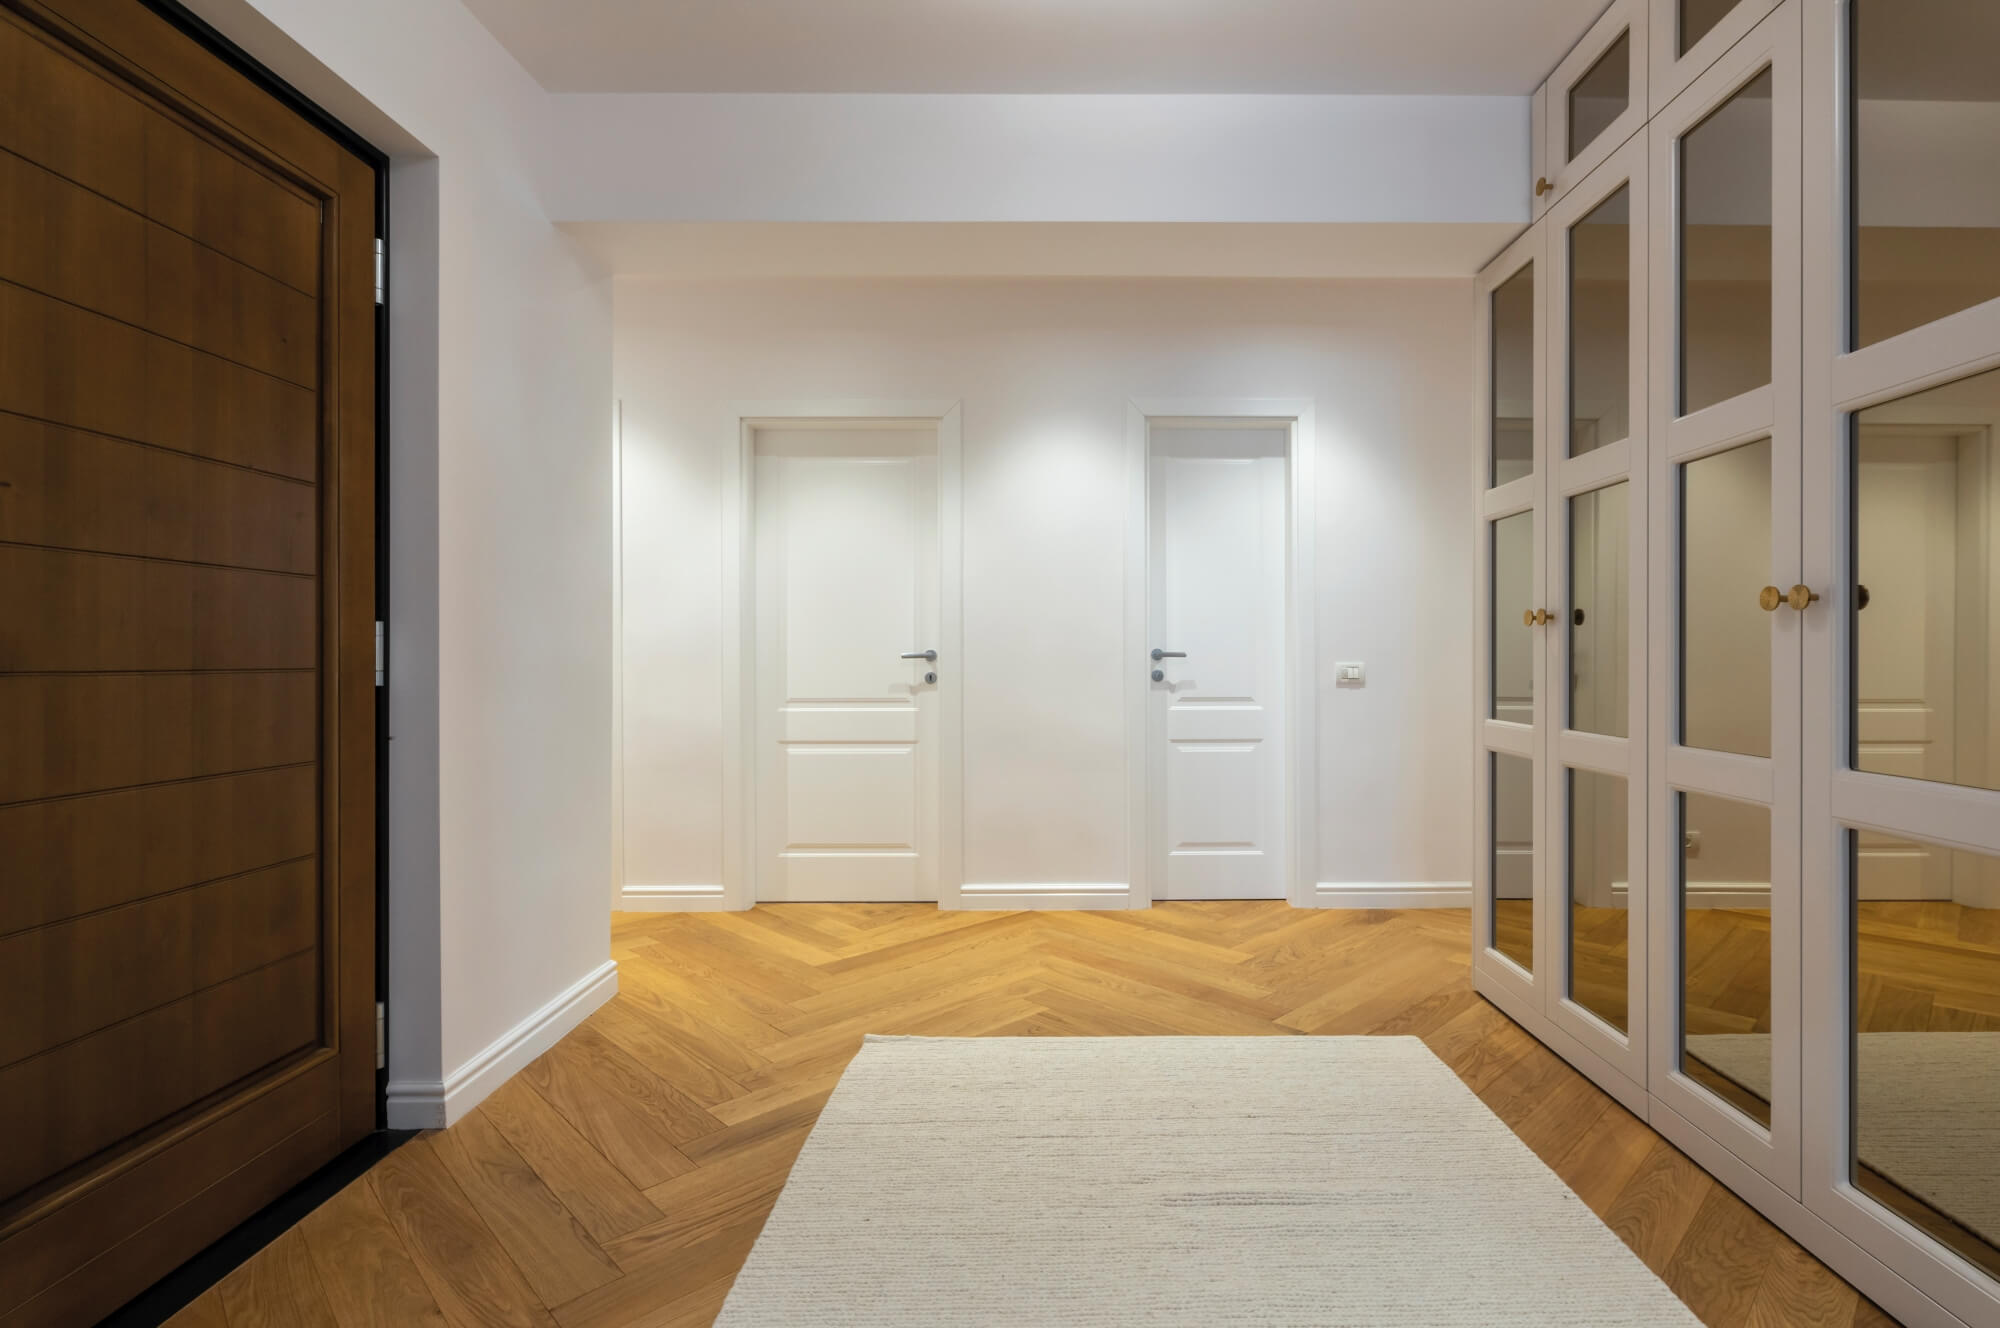 Large clean entry with herringbone flooring.